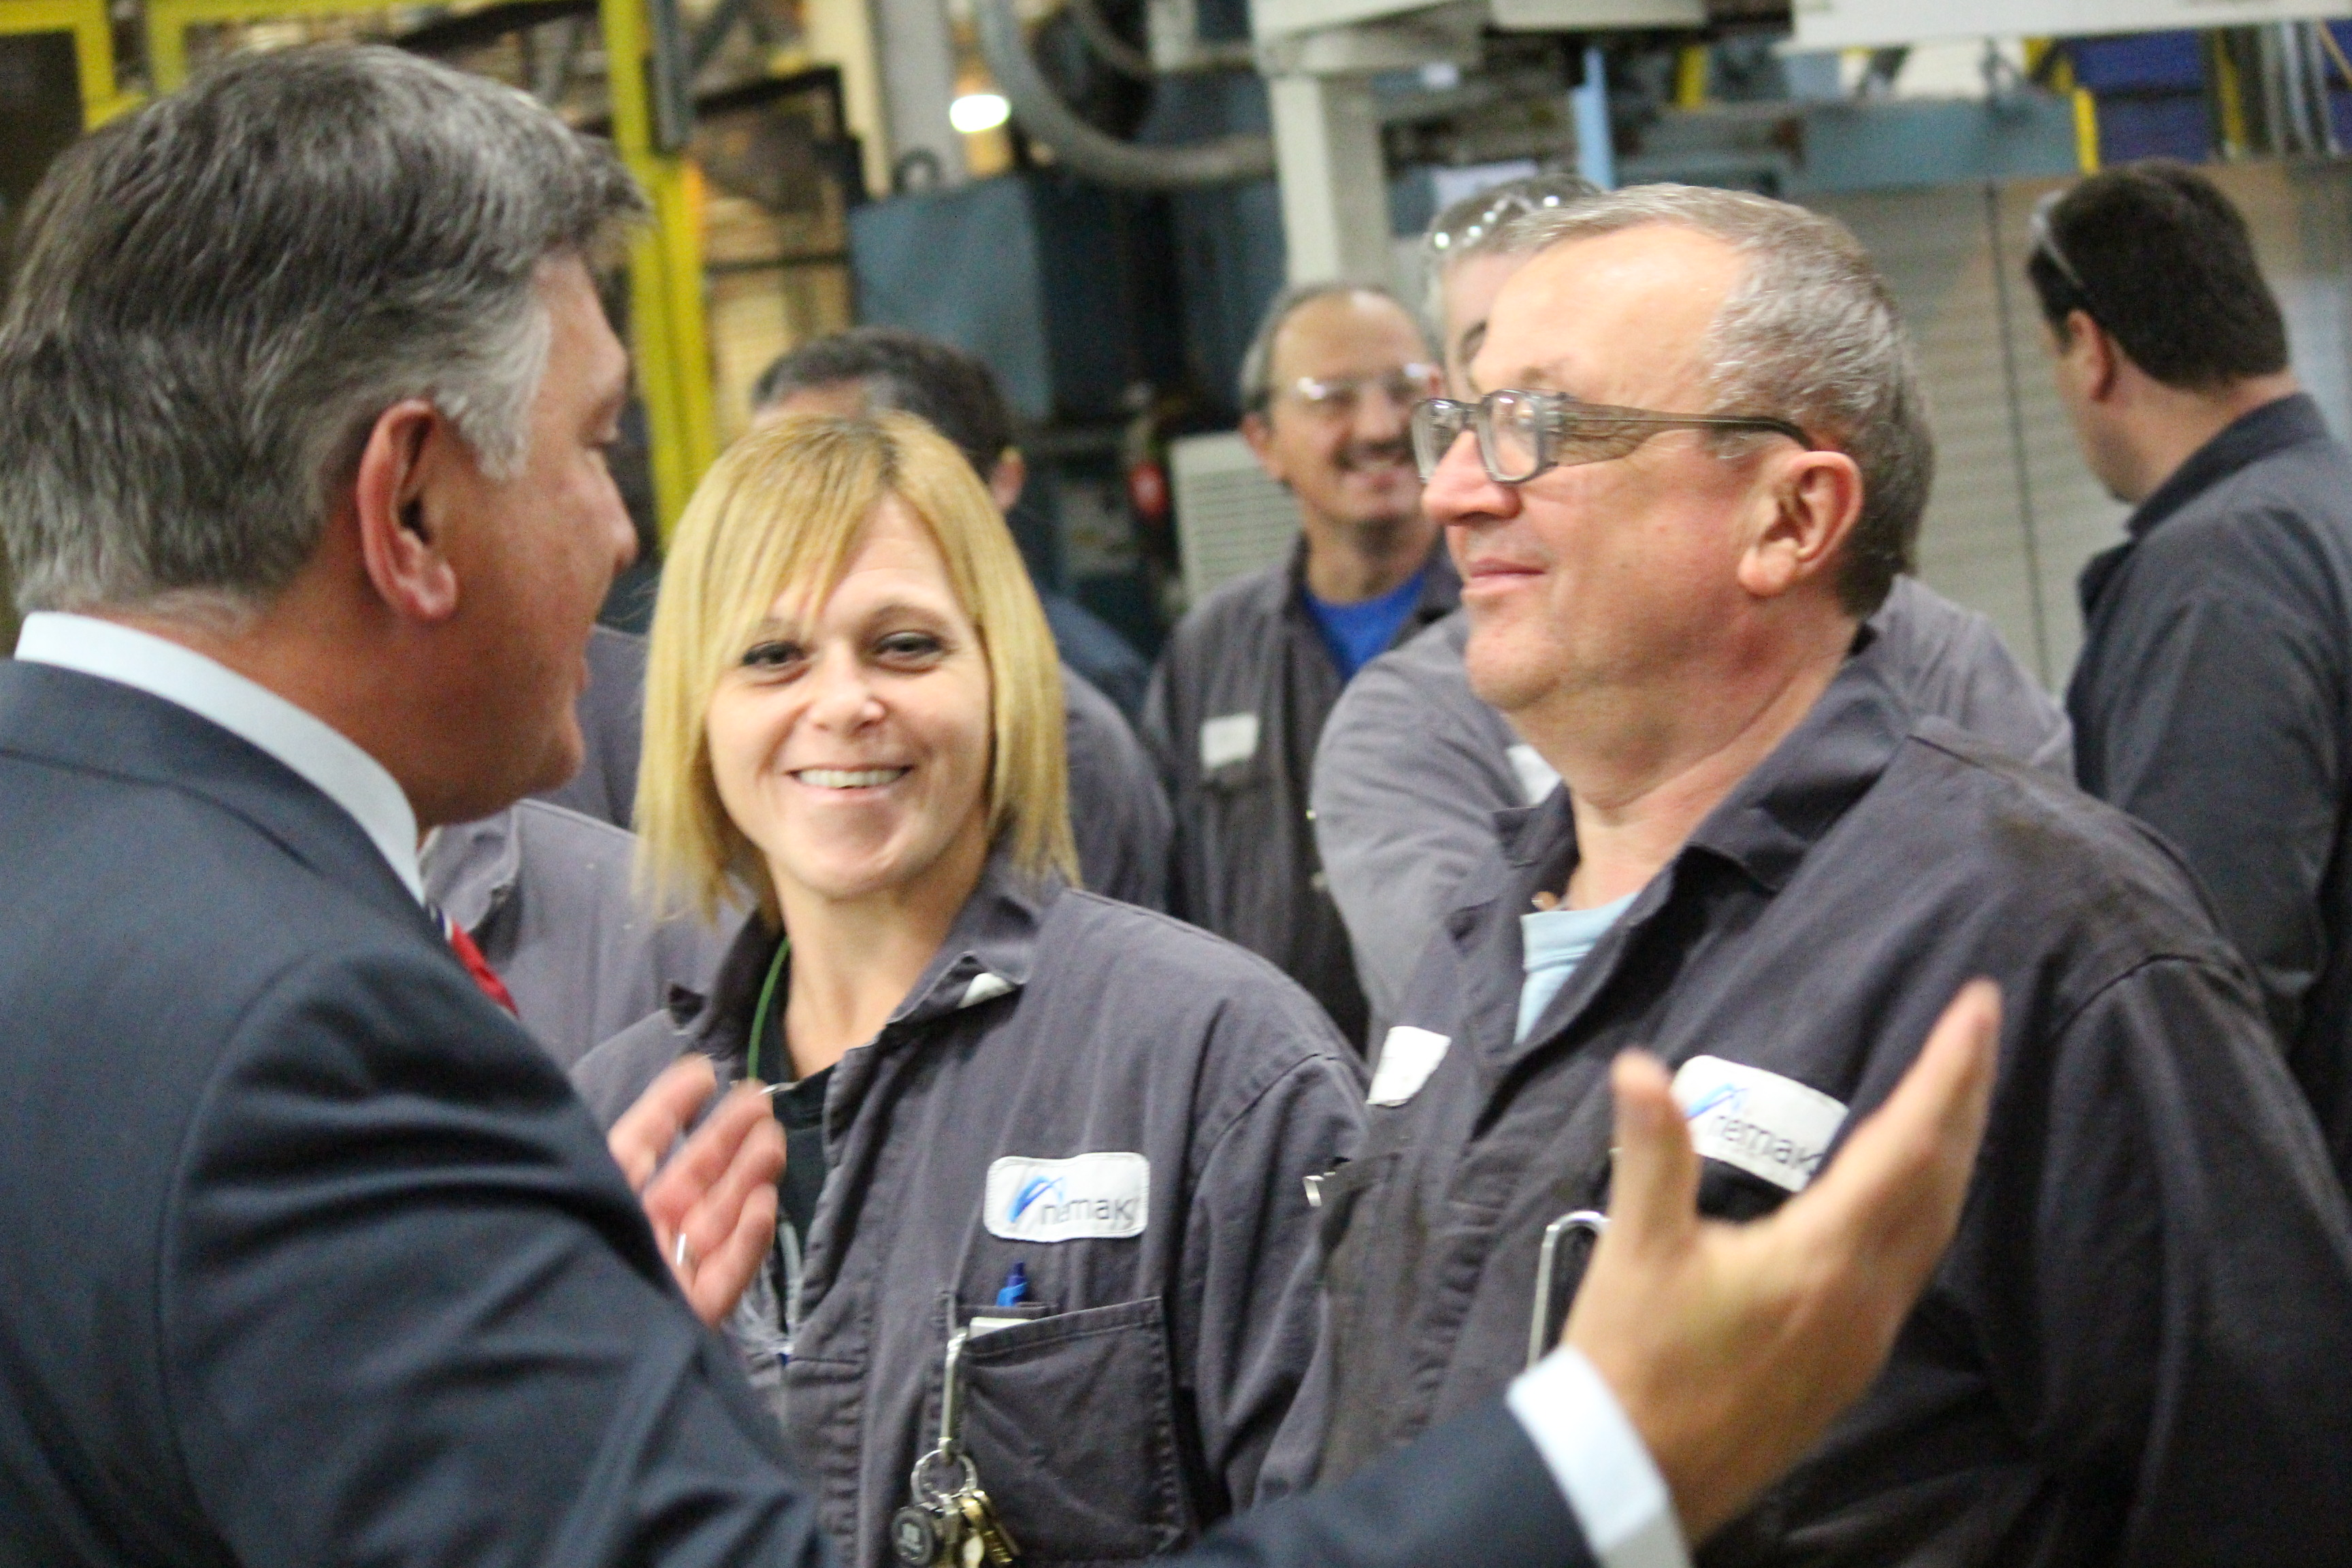 Ontario Finance Minister Charles Sousa, left, speaks with Nemak workers after announcing a $1.5-million government grant for the plant. (Photo by Jason Viau)